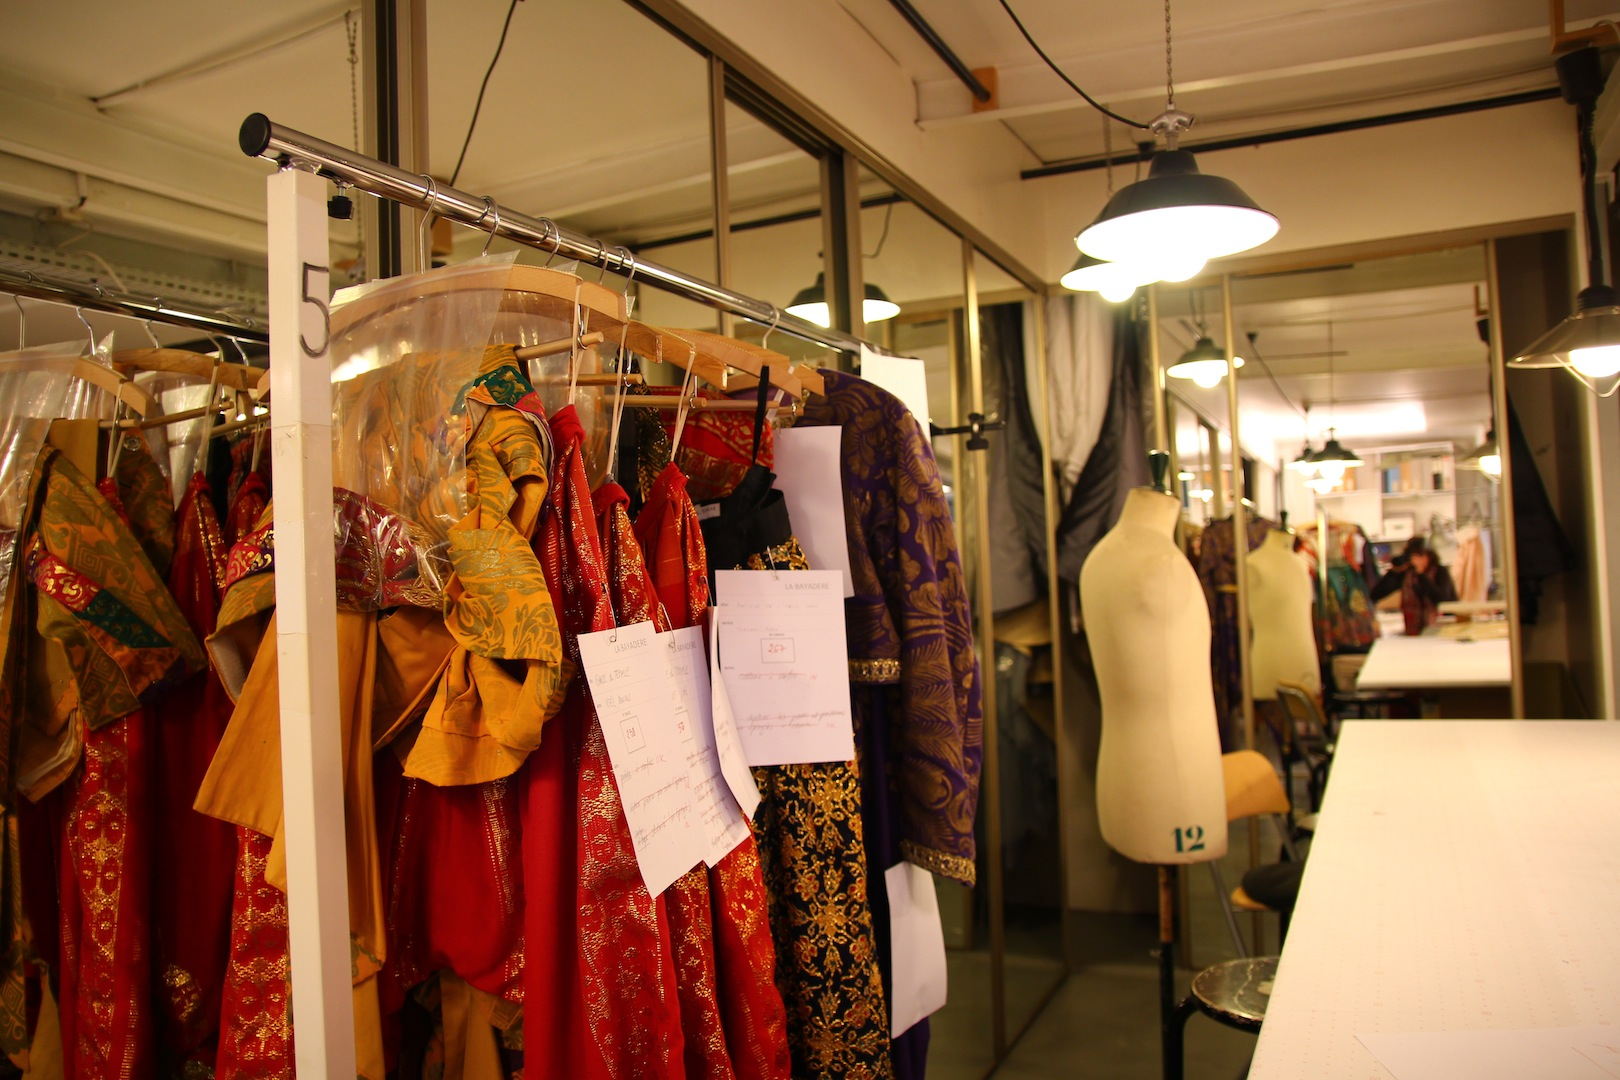 More than 200 costumes, for one single ballet!